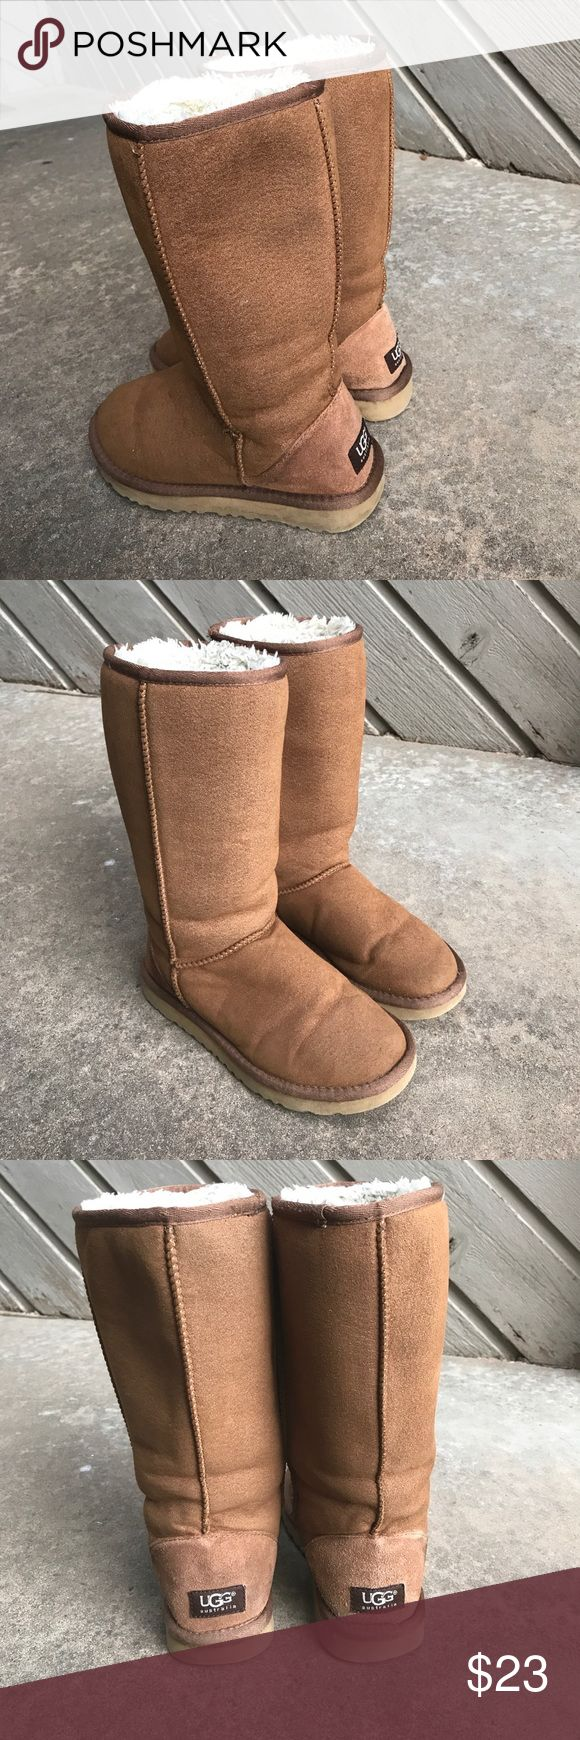 UGG Classic Tall Boots Excellent lightly used condition. Chestnut in color and size 6. UGG Shoes Winter & Rain Boots